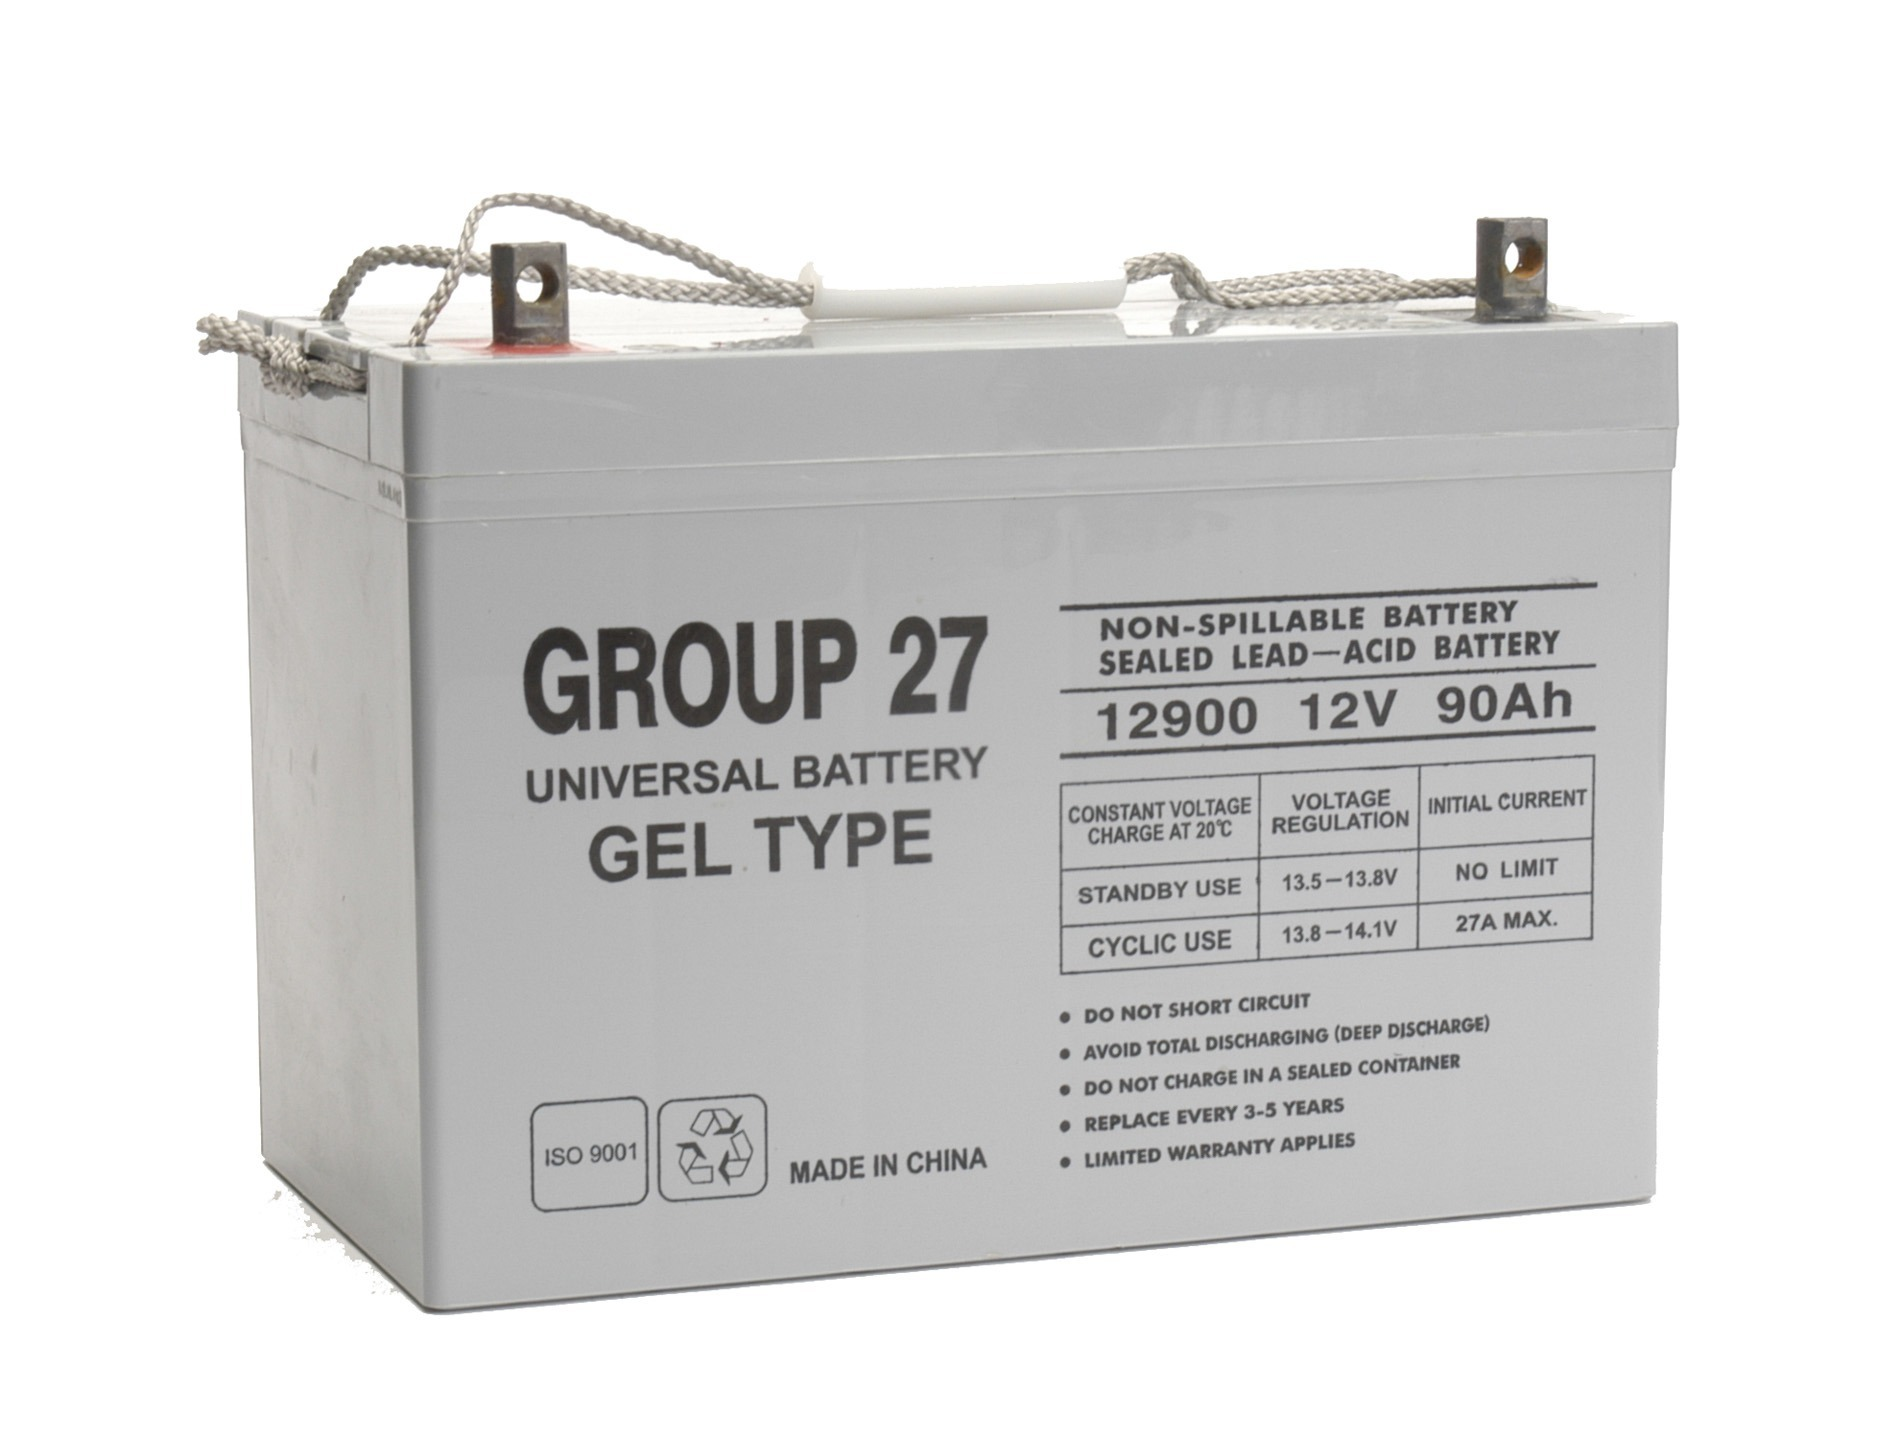 12v 90ah (Group 27) Gel Battery for Dehler D38 New Wave Yachts